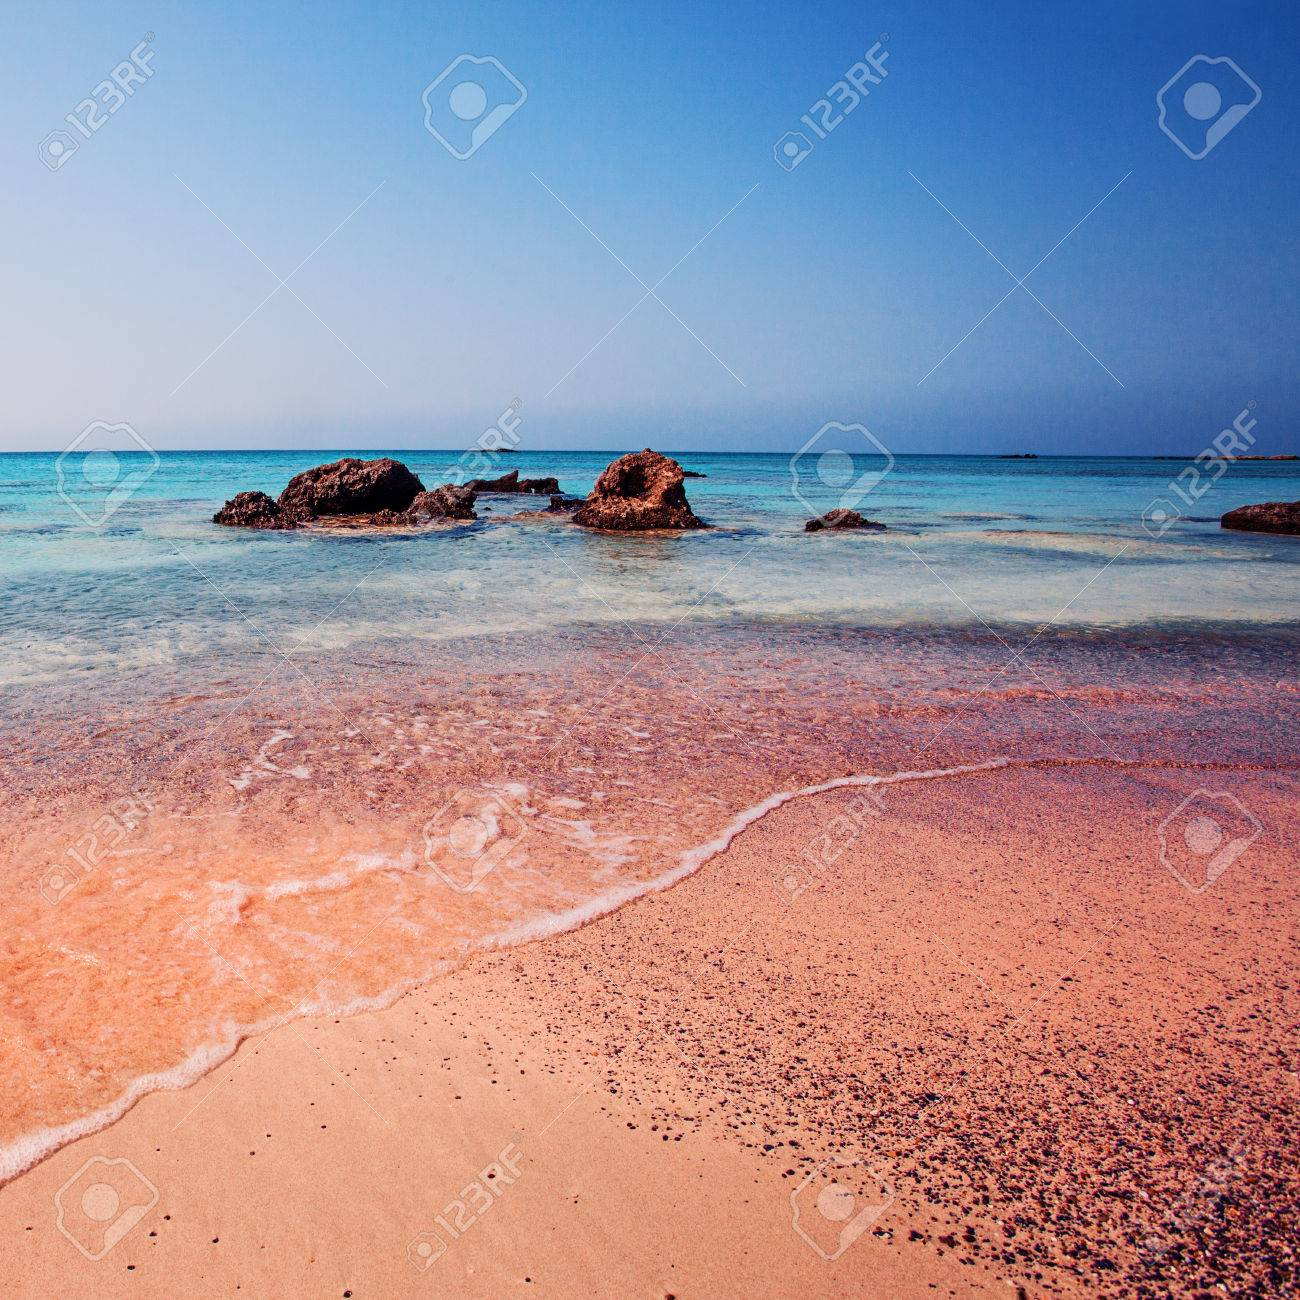 Crete Greece The Wave Of The Sea On The Pink Sand On Beautiful